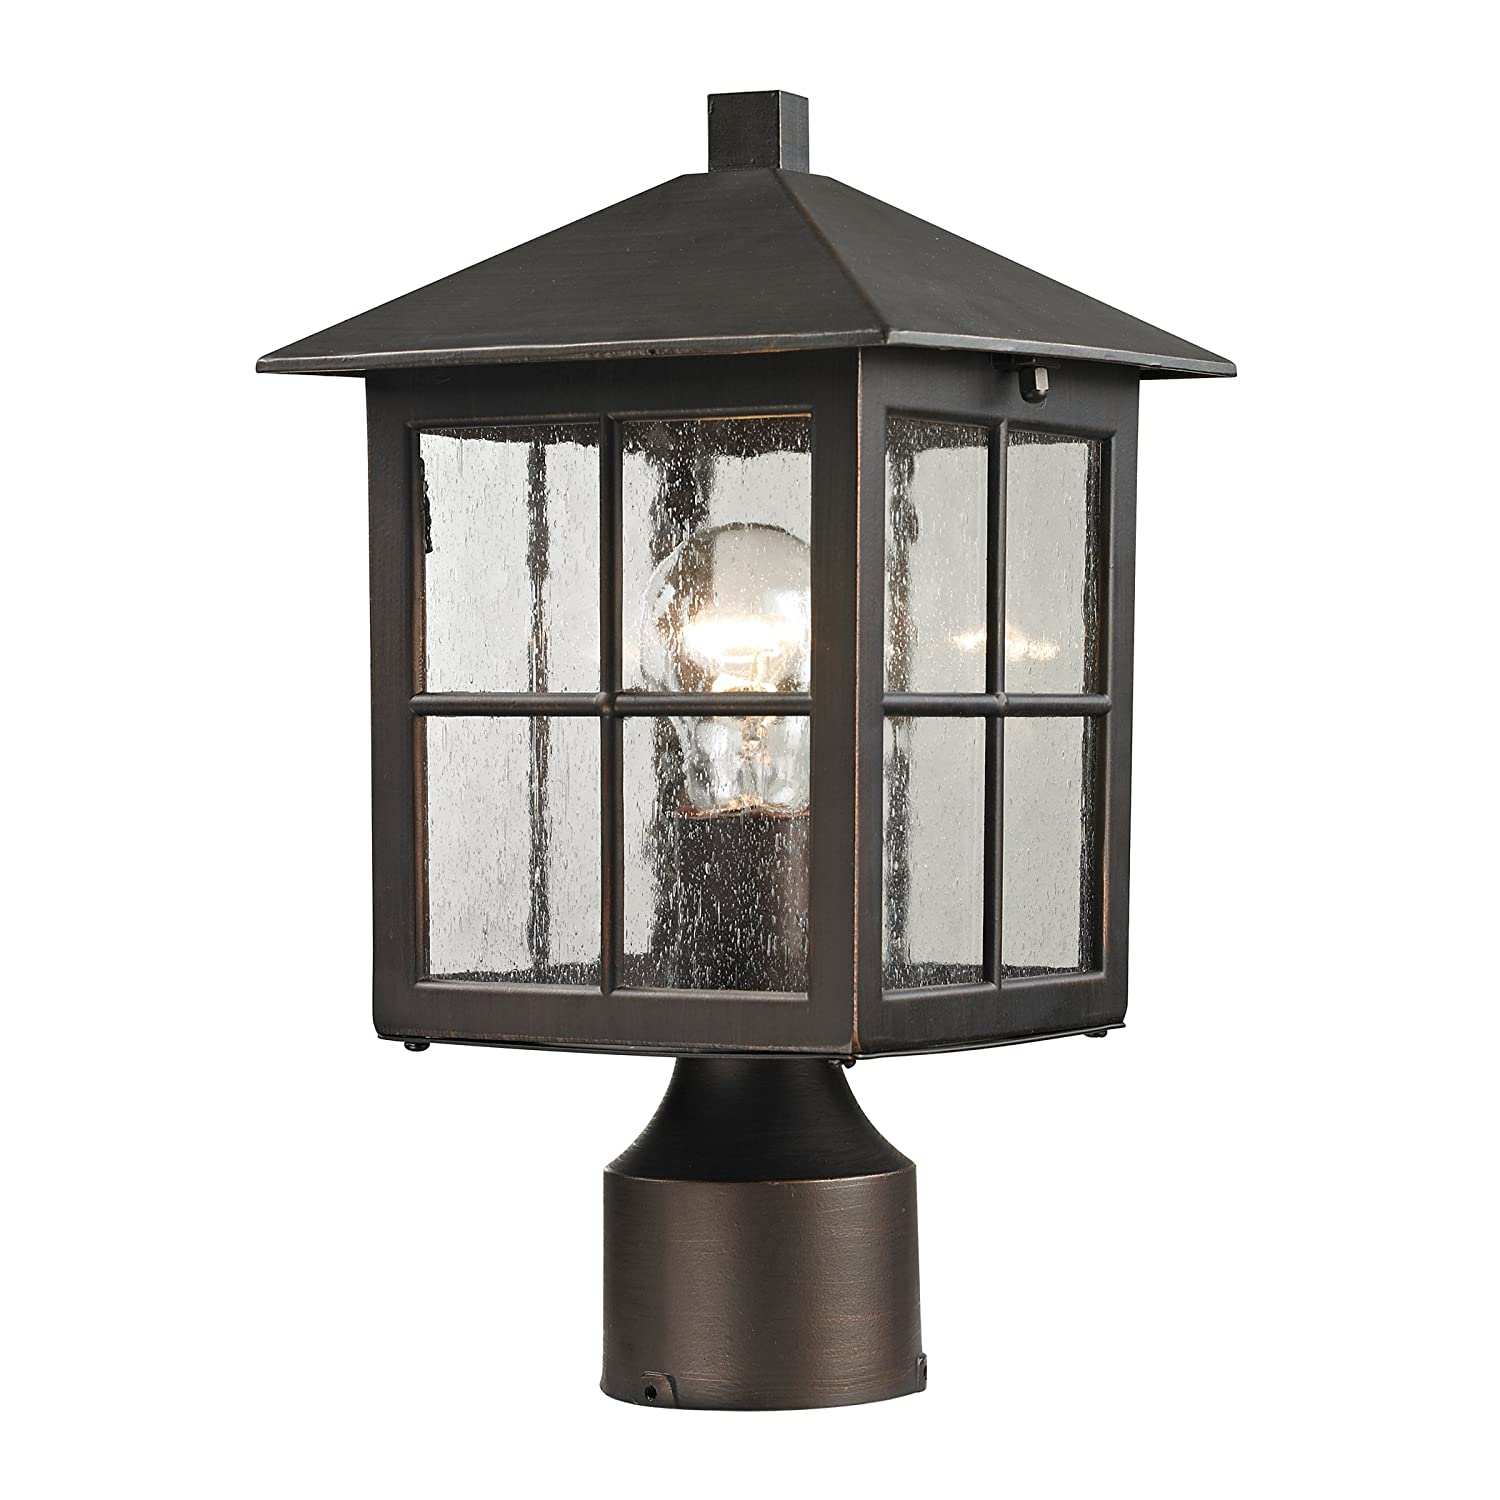 view bronze outdoor glass lamps rubbed in shown opal inch bay cfm finish etched lighting minka and lamp item post wide oil lavery light